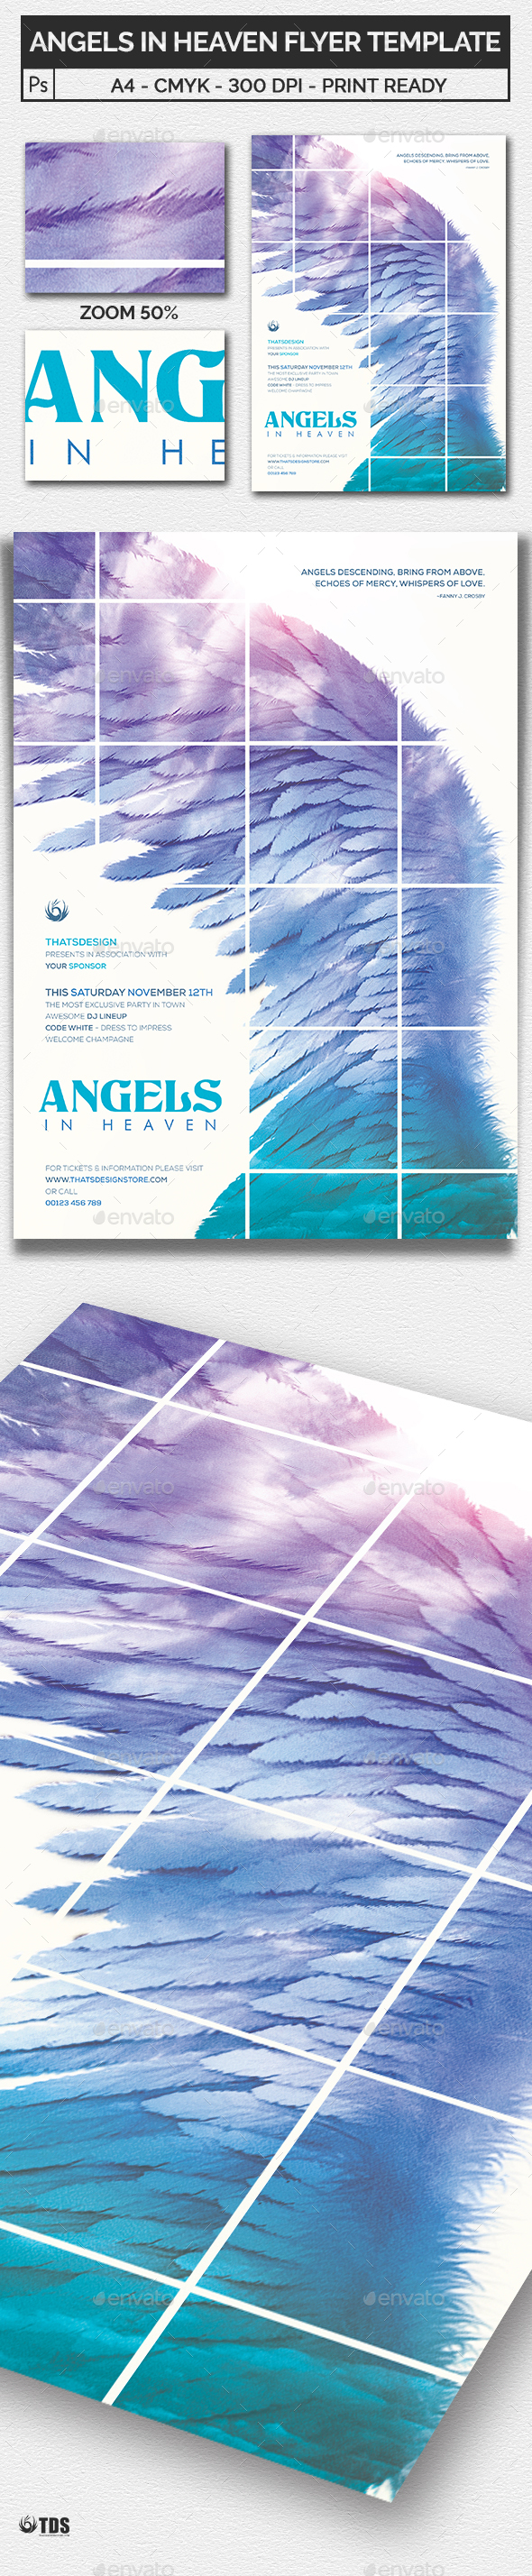 Angels in Heaven Flyer Template by lou606 – Azure Flyer Template